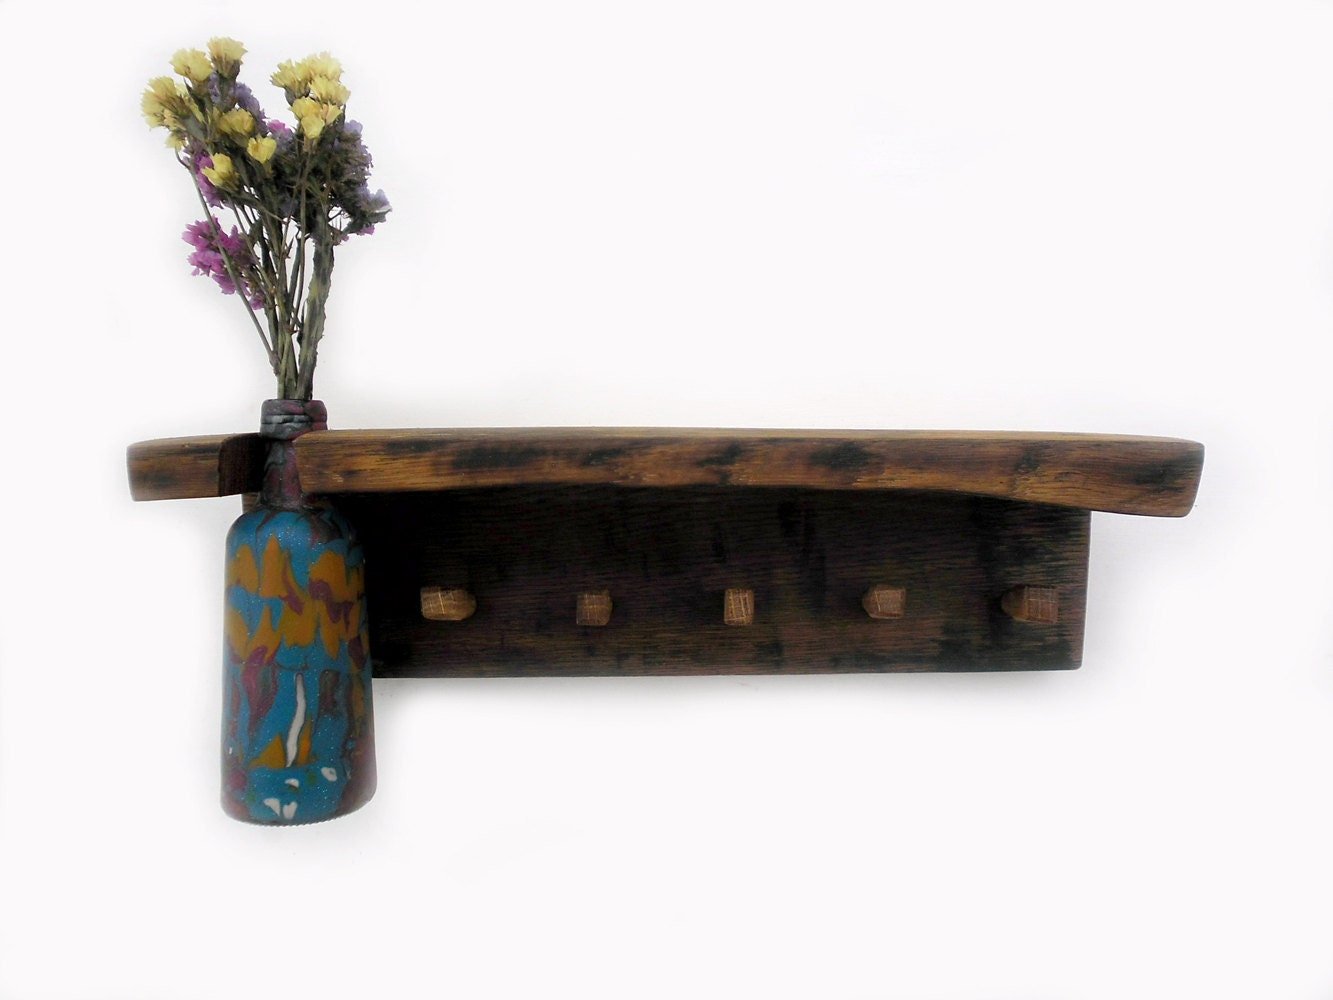 Entryway Wall Organizer Wooden Key Holder With A Shelf And Vase By Thirdcloudtotheleft